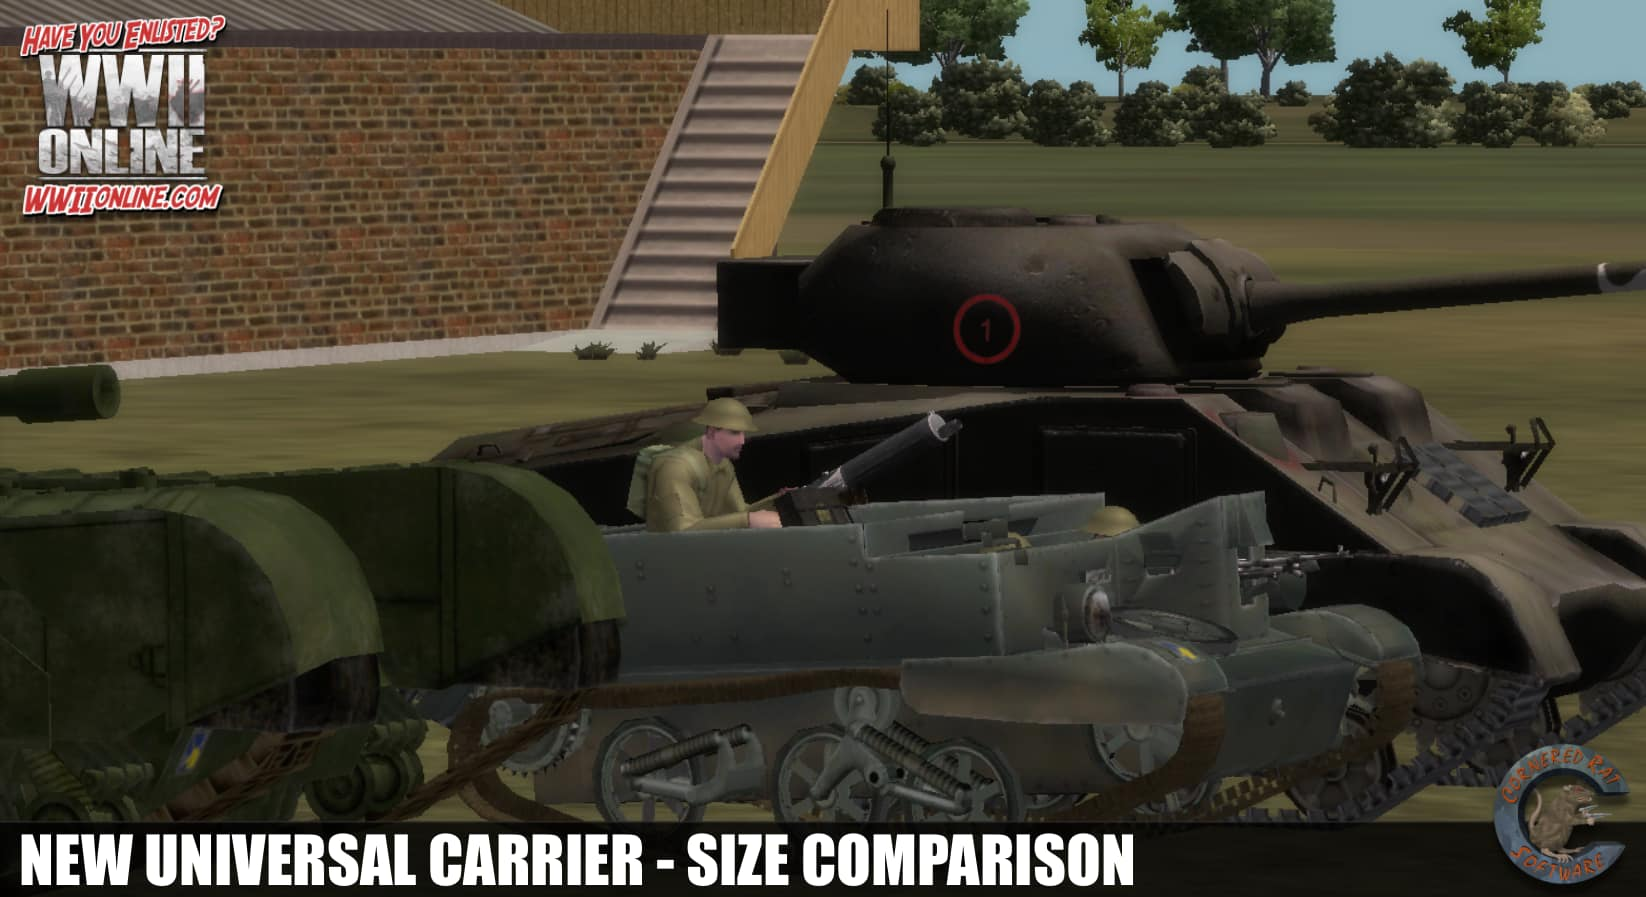 Universal Carrier size comparison